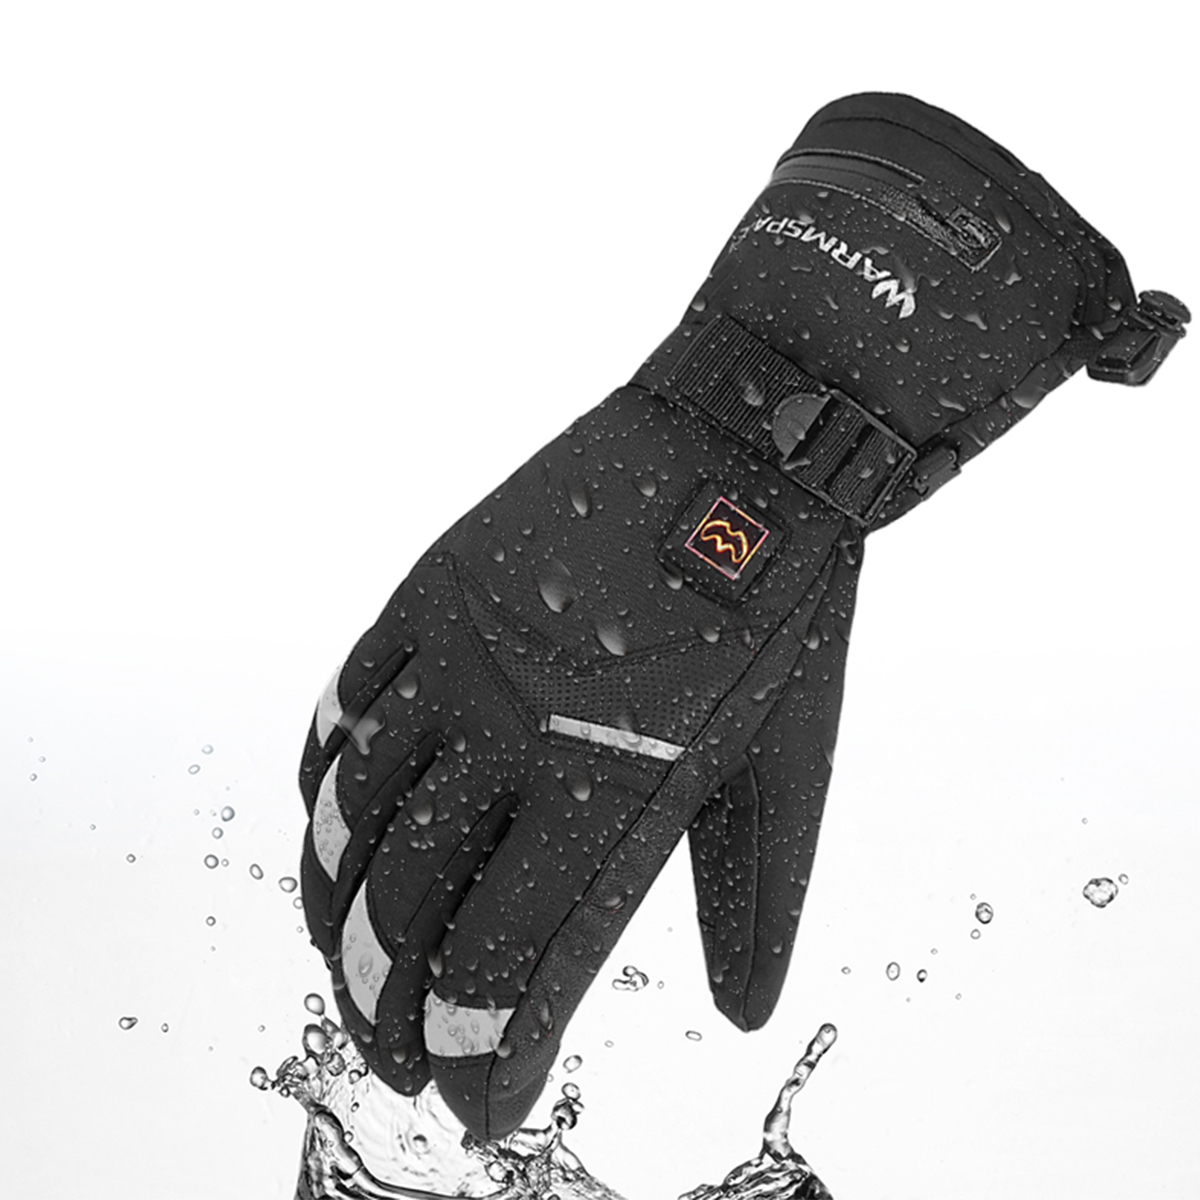 WARMSPACE 5 Gear Temperature Electric Heated Gloves Touch Screen Waterproof For Motorcylce Riding Outdoor Climbing Skiing